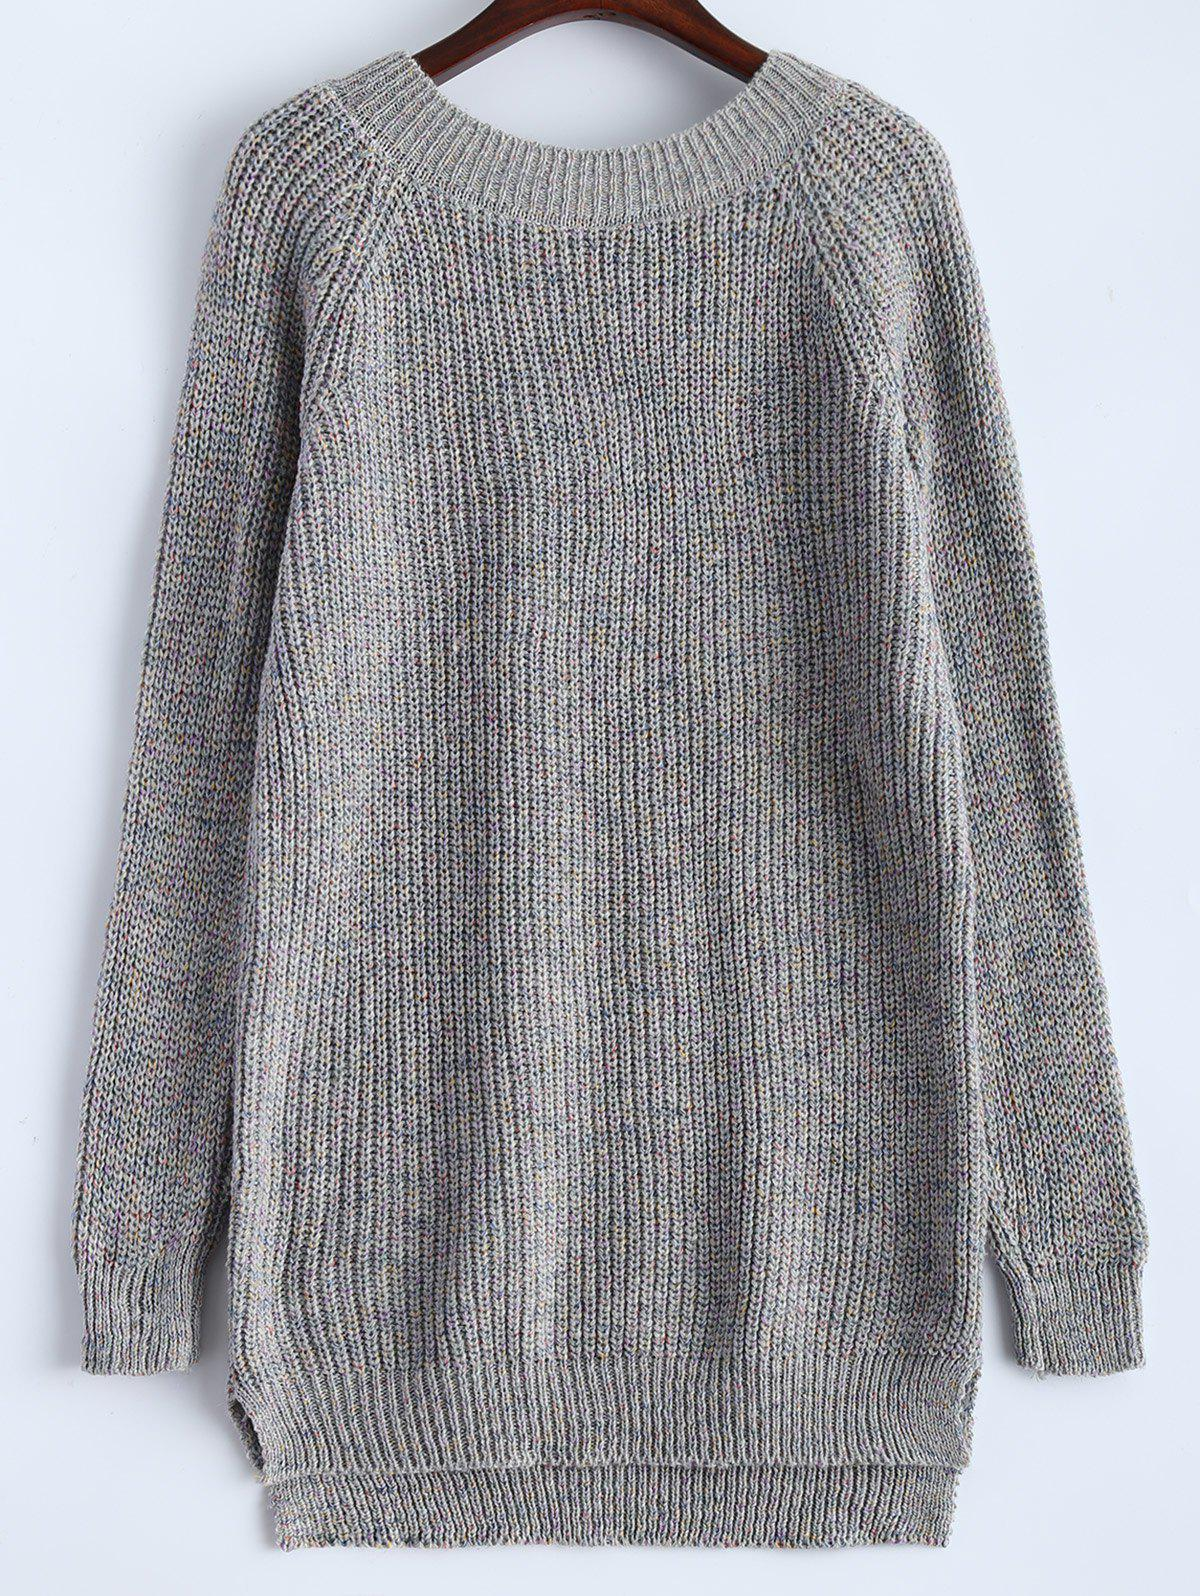 Buy great quality women's jumpers & cardigans at Dunnes Stores. Including stylish knitwear, ponchos and much more to suit all budgets.